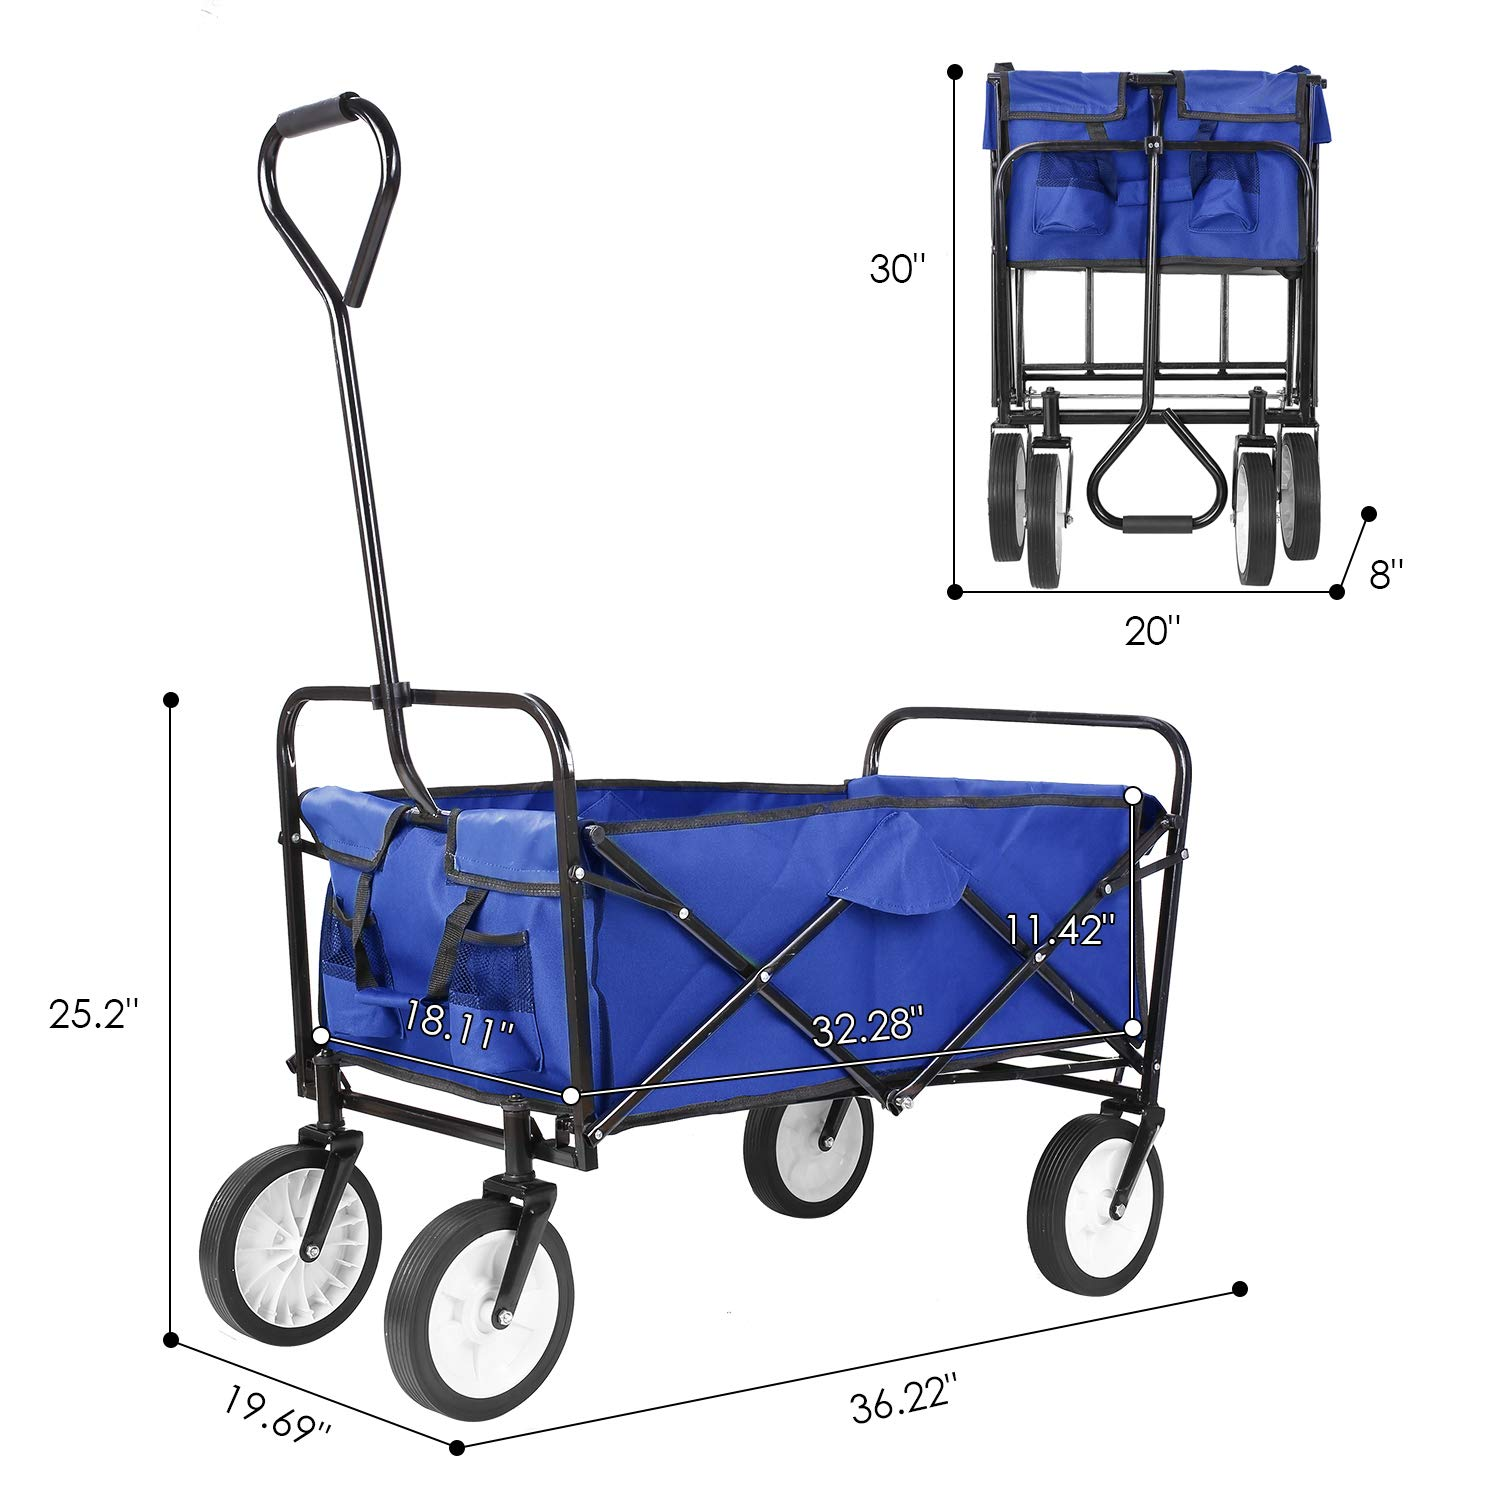 Collapsible Outdoor Utility Wagon, Heavy Duty Folding Garden Portable Hand Cart, with 8'' Rubber Wheels and Drink Holder, Suit for Shopping and Park Picnic, Beach Trip and Camping (Blue) by HEMBOR (Image #3)